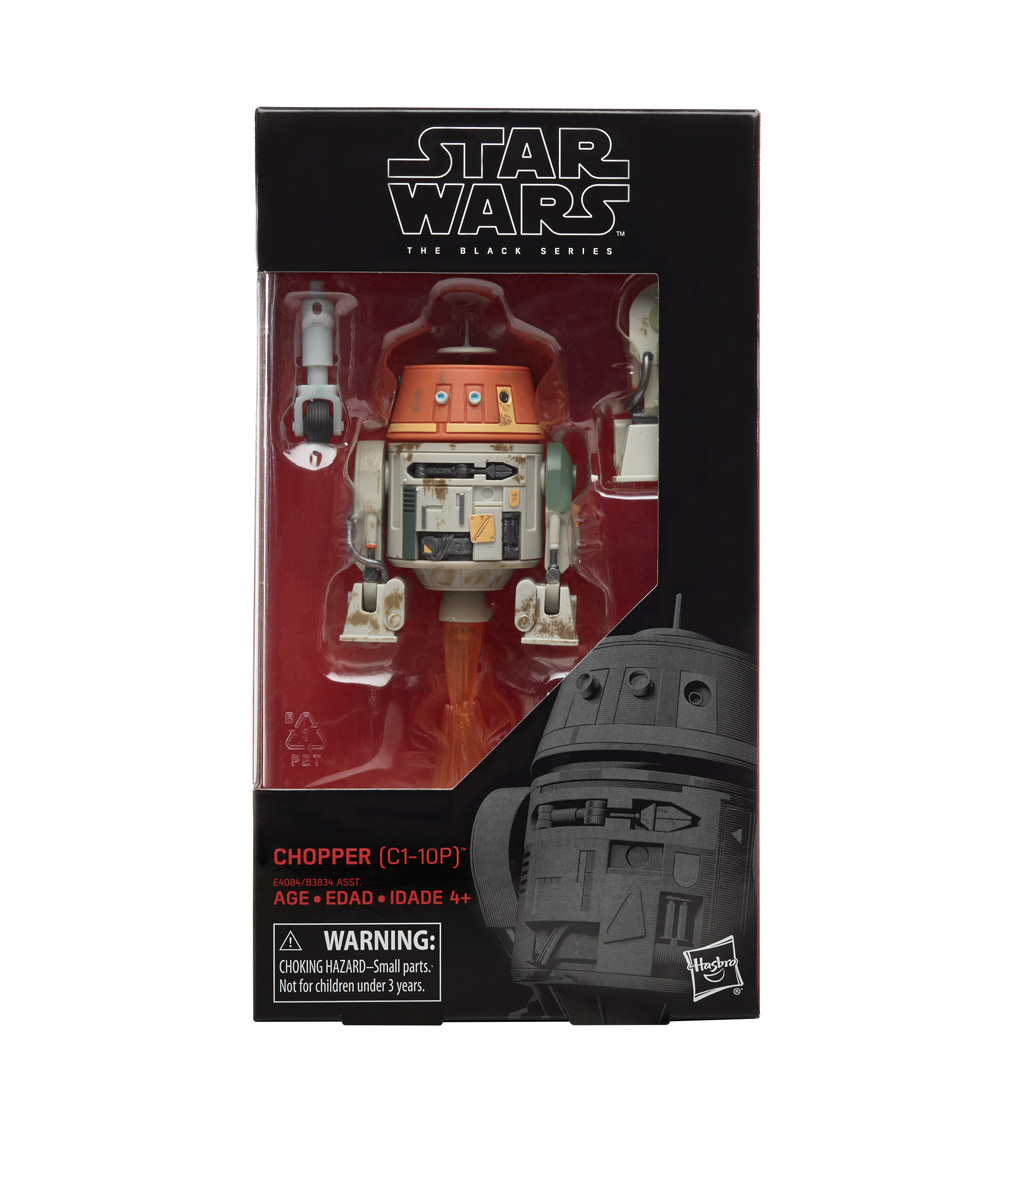 star-wars-the-black-series-6-inch-figure-assortment-chopper-in-pck-1